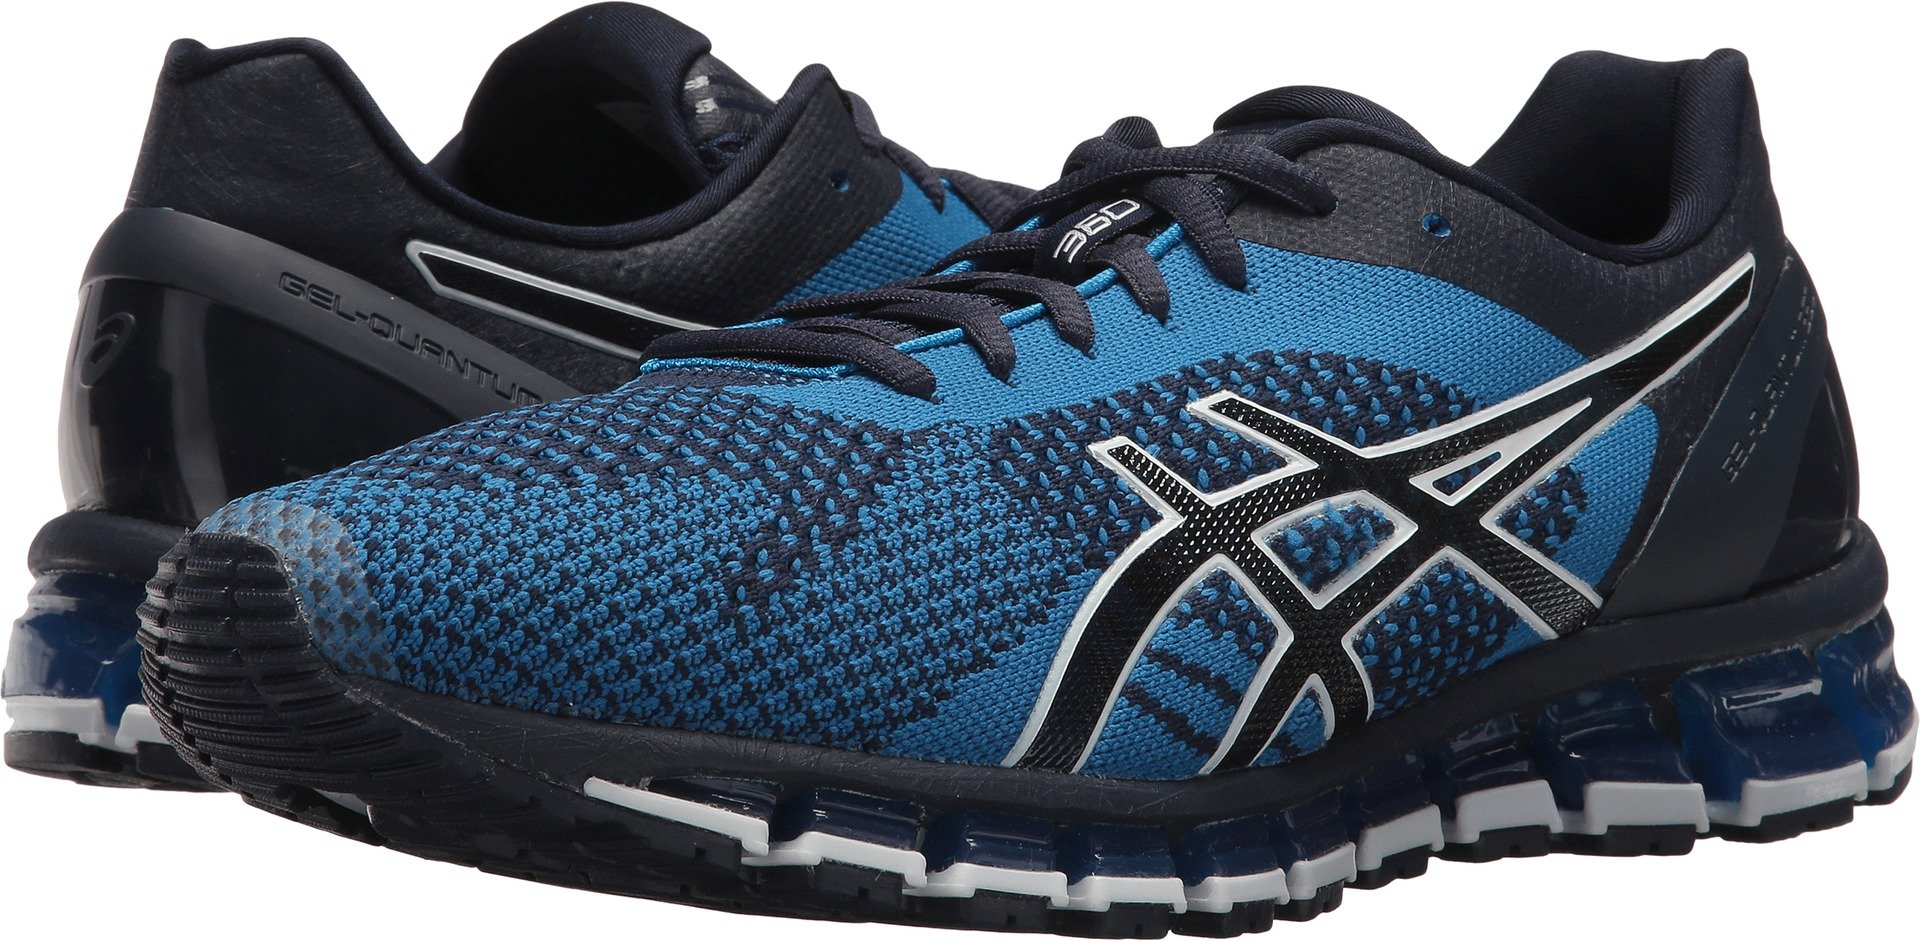 ASICS Men's Gel-Quantum 360 Knit Knit Peacoat/Blue/White 10 D US